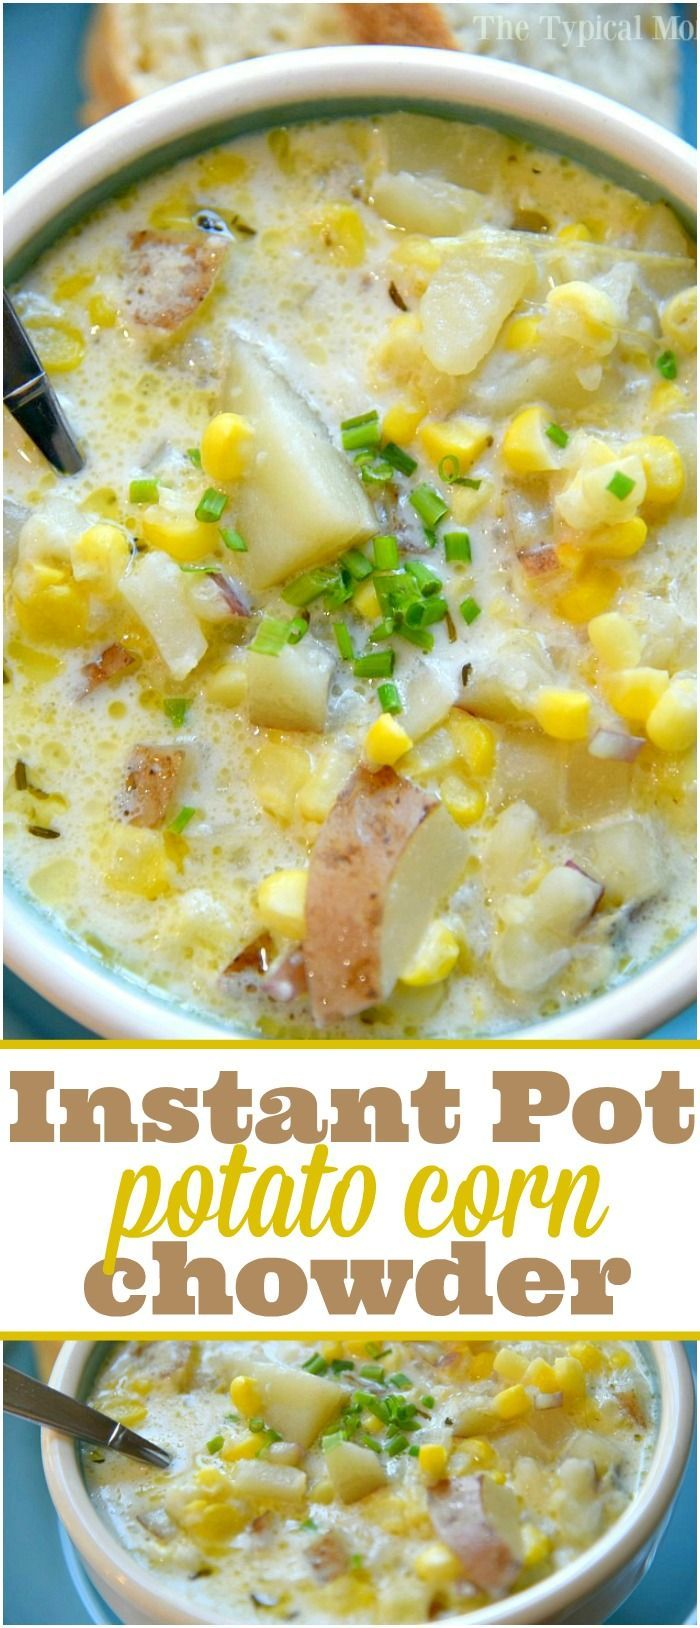 #thetypicalmom #instantpot #including #chowder #perfect #amazing #chowder #minutes #instant #potato...